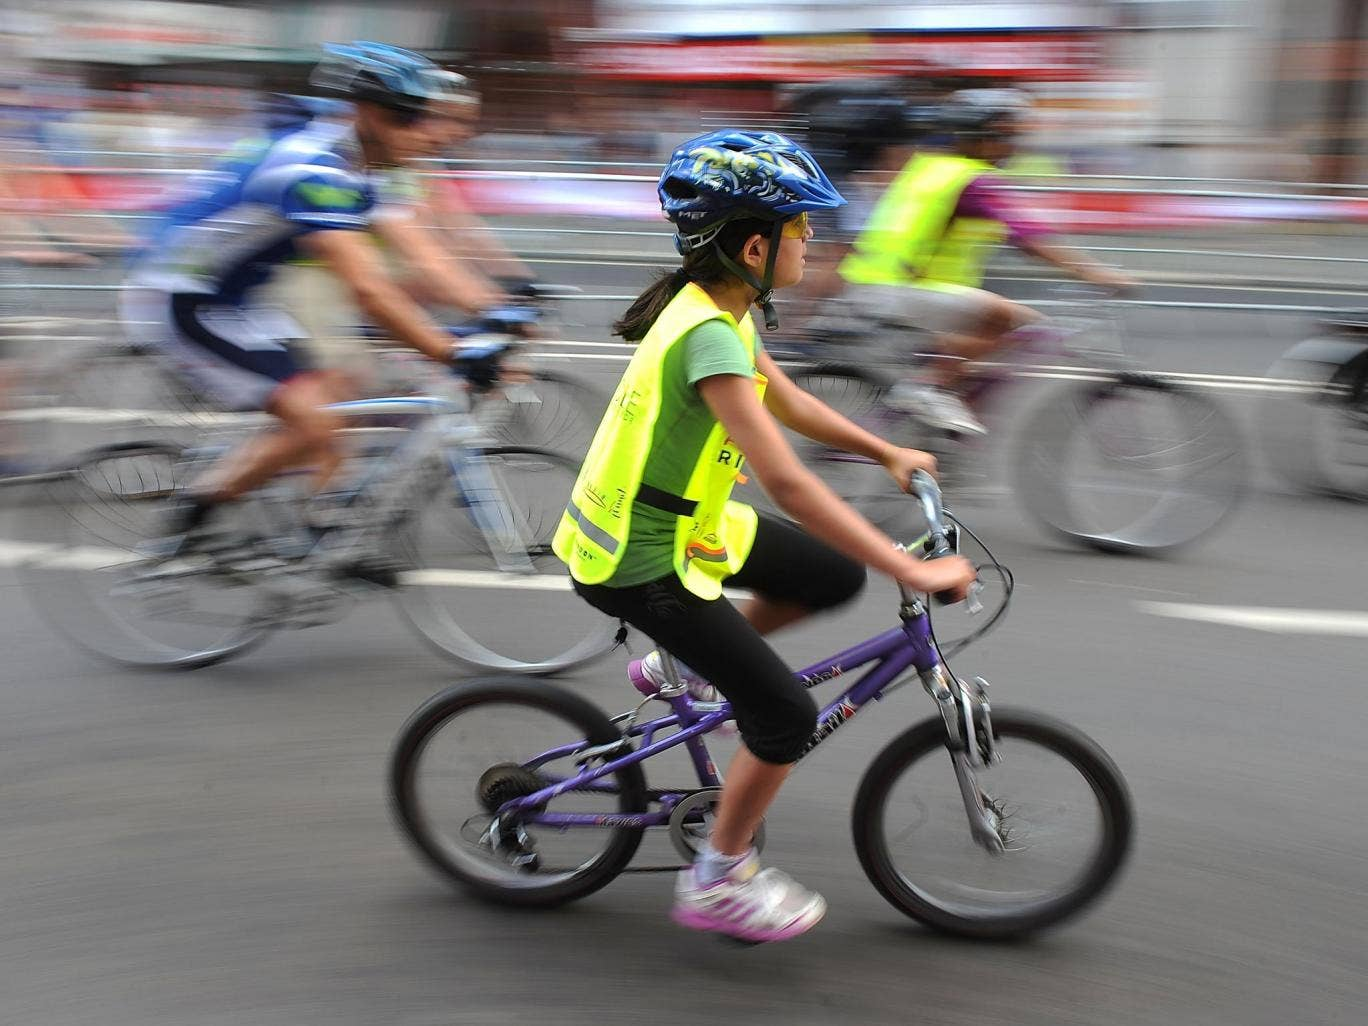 The number of children cycling to school regularly more than doubled when training courses and cycling facilities were provided